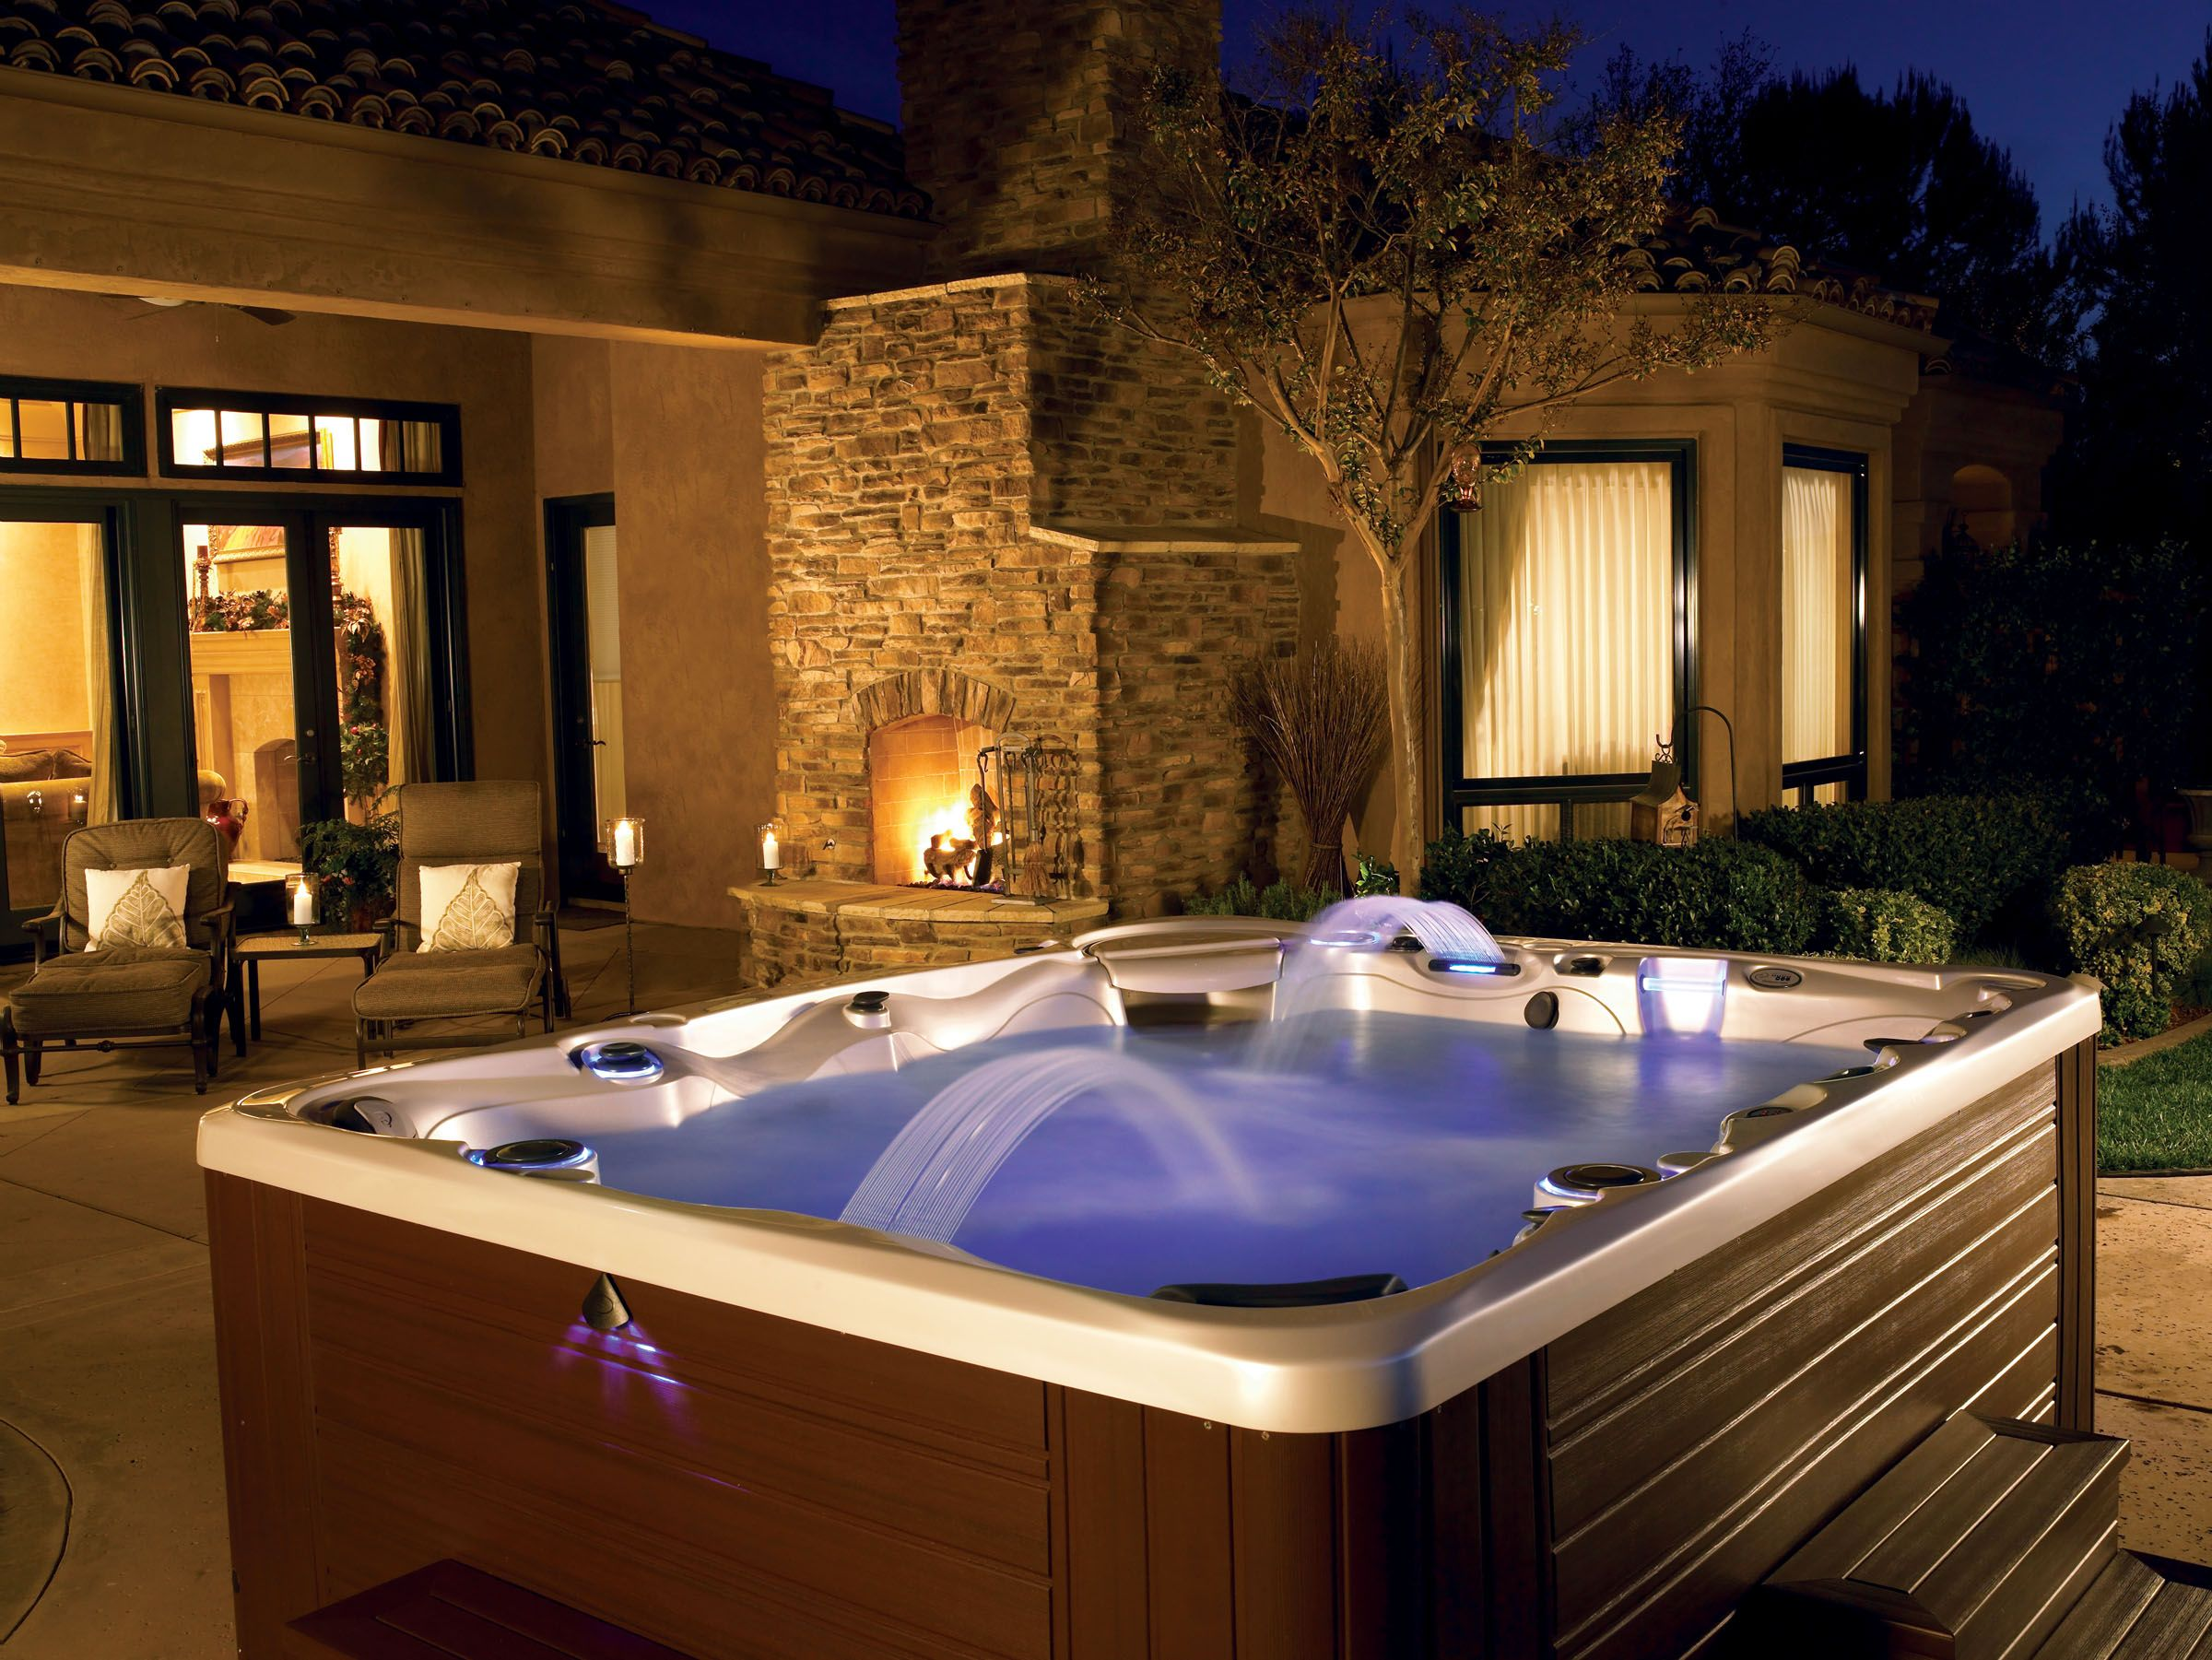 hot backyard social with how many you ideas host fun are people tubs a and much can for soothing tub larger